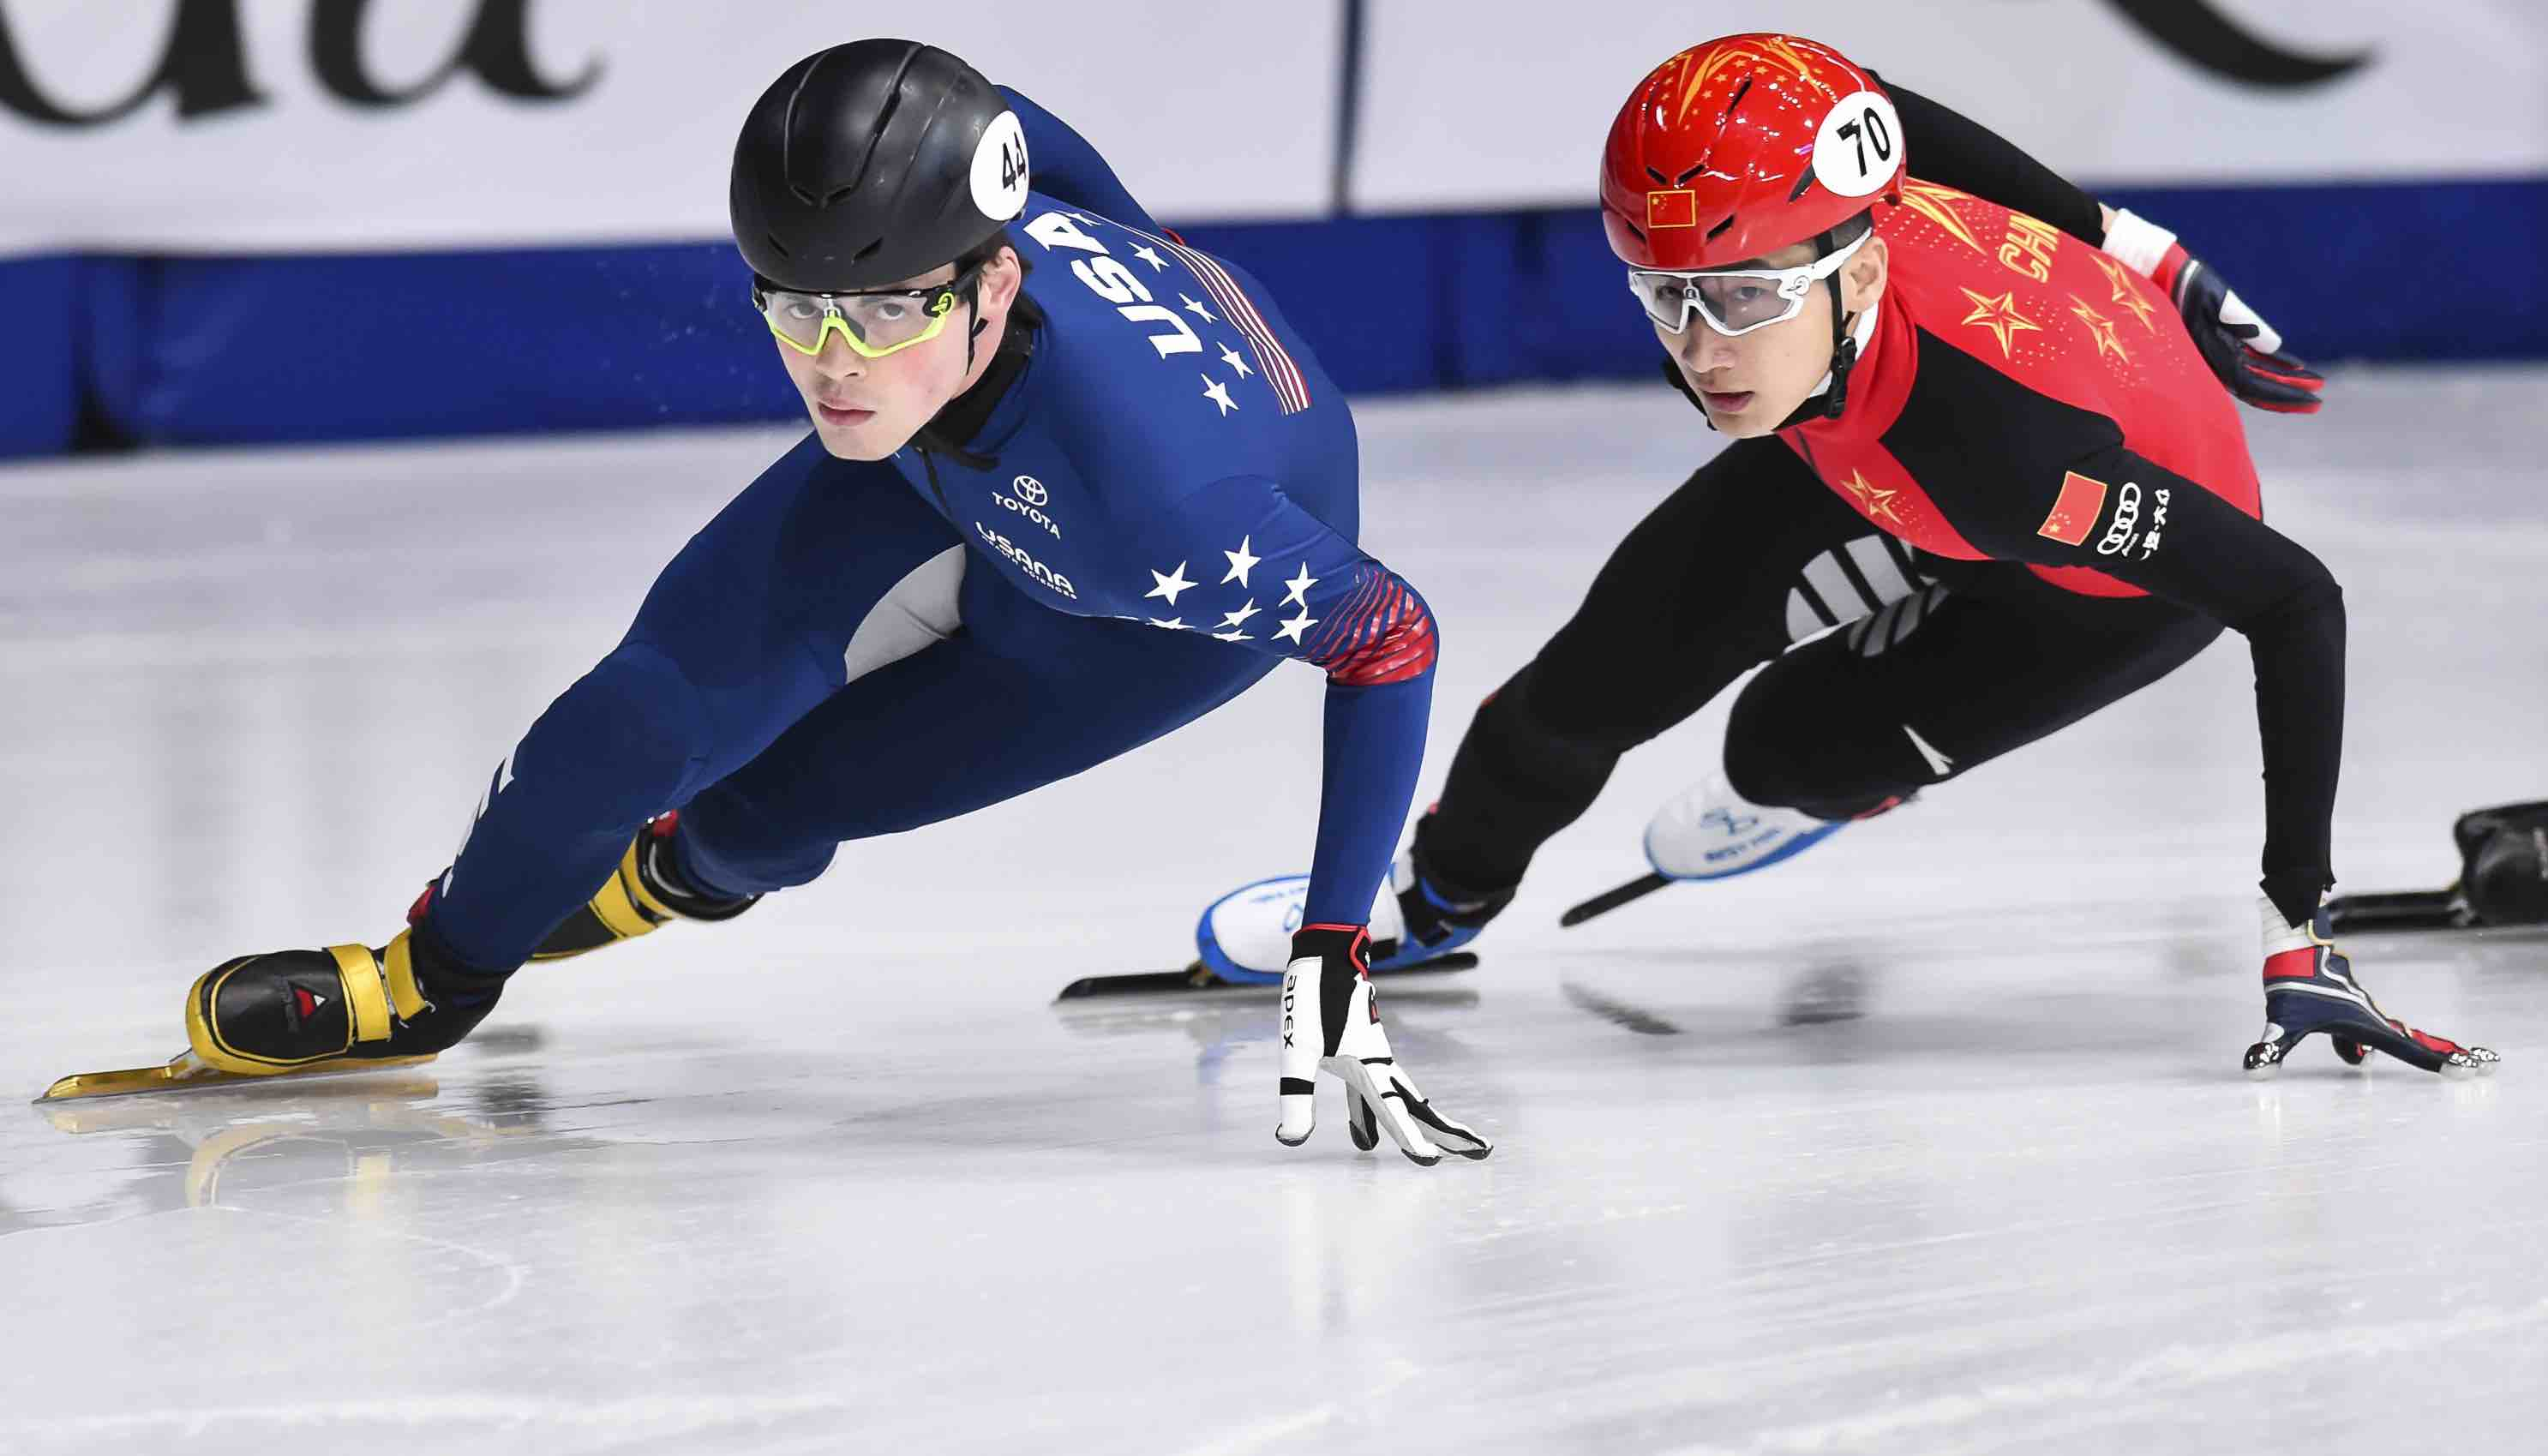 John-Henry Krueger of the US and Hongzhi Xu of China in the World Short Track Speed Skating Championships in Montreal in March (Photo: Minas Panagiotakis via Getty)